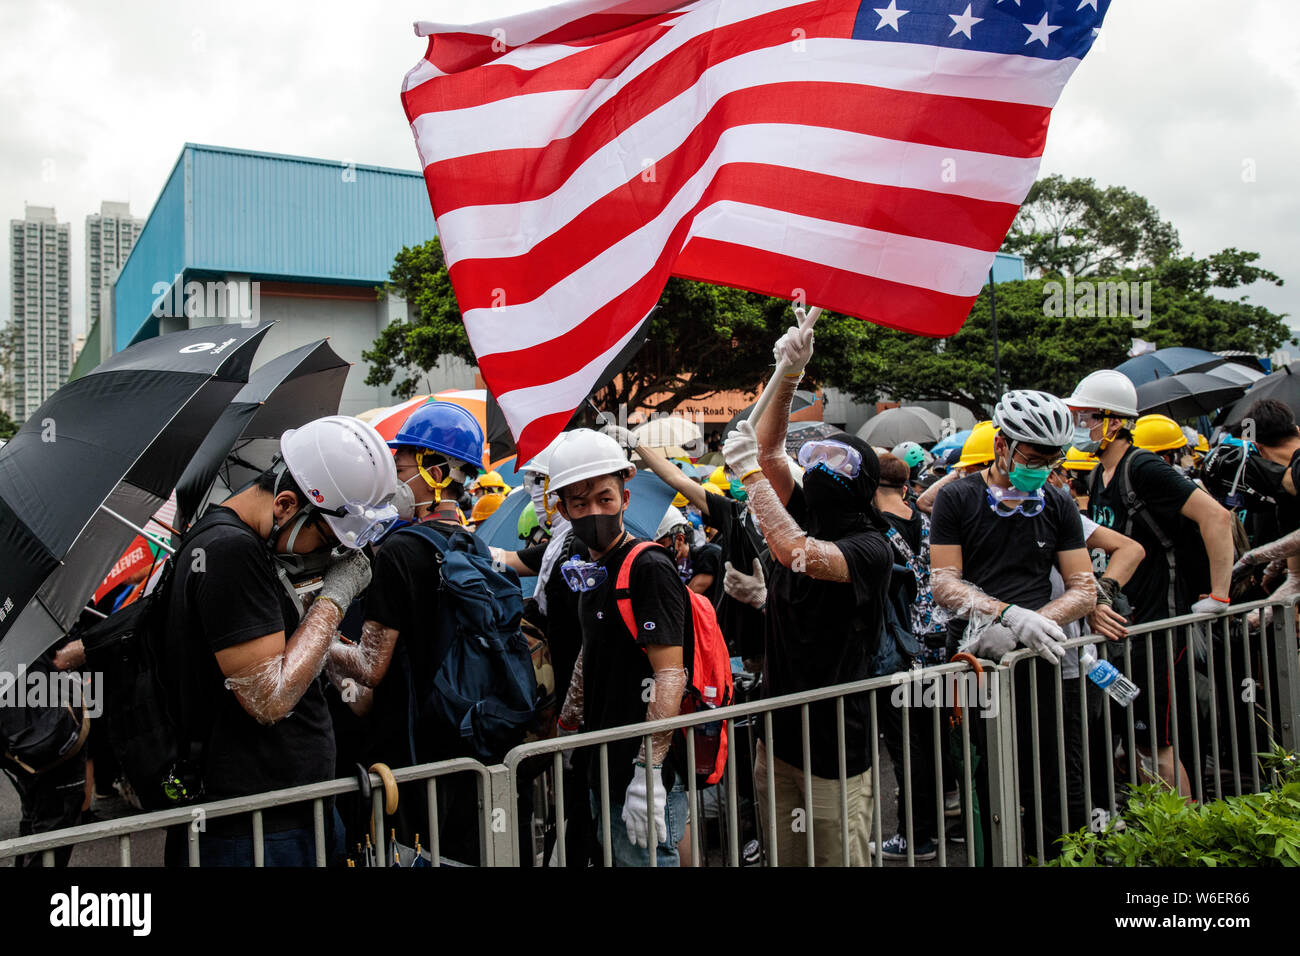 Us Extradition Stock Photos & Us Extradition Stock Images